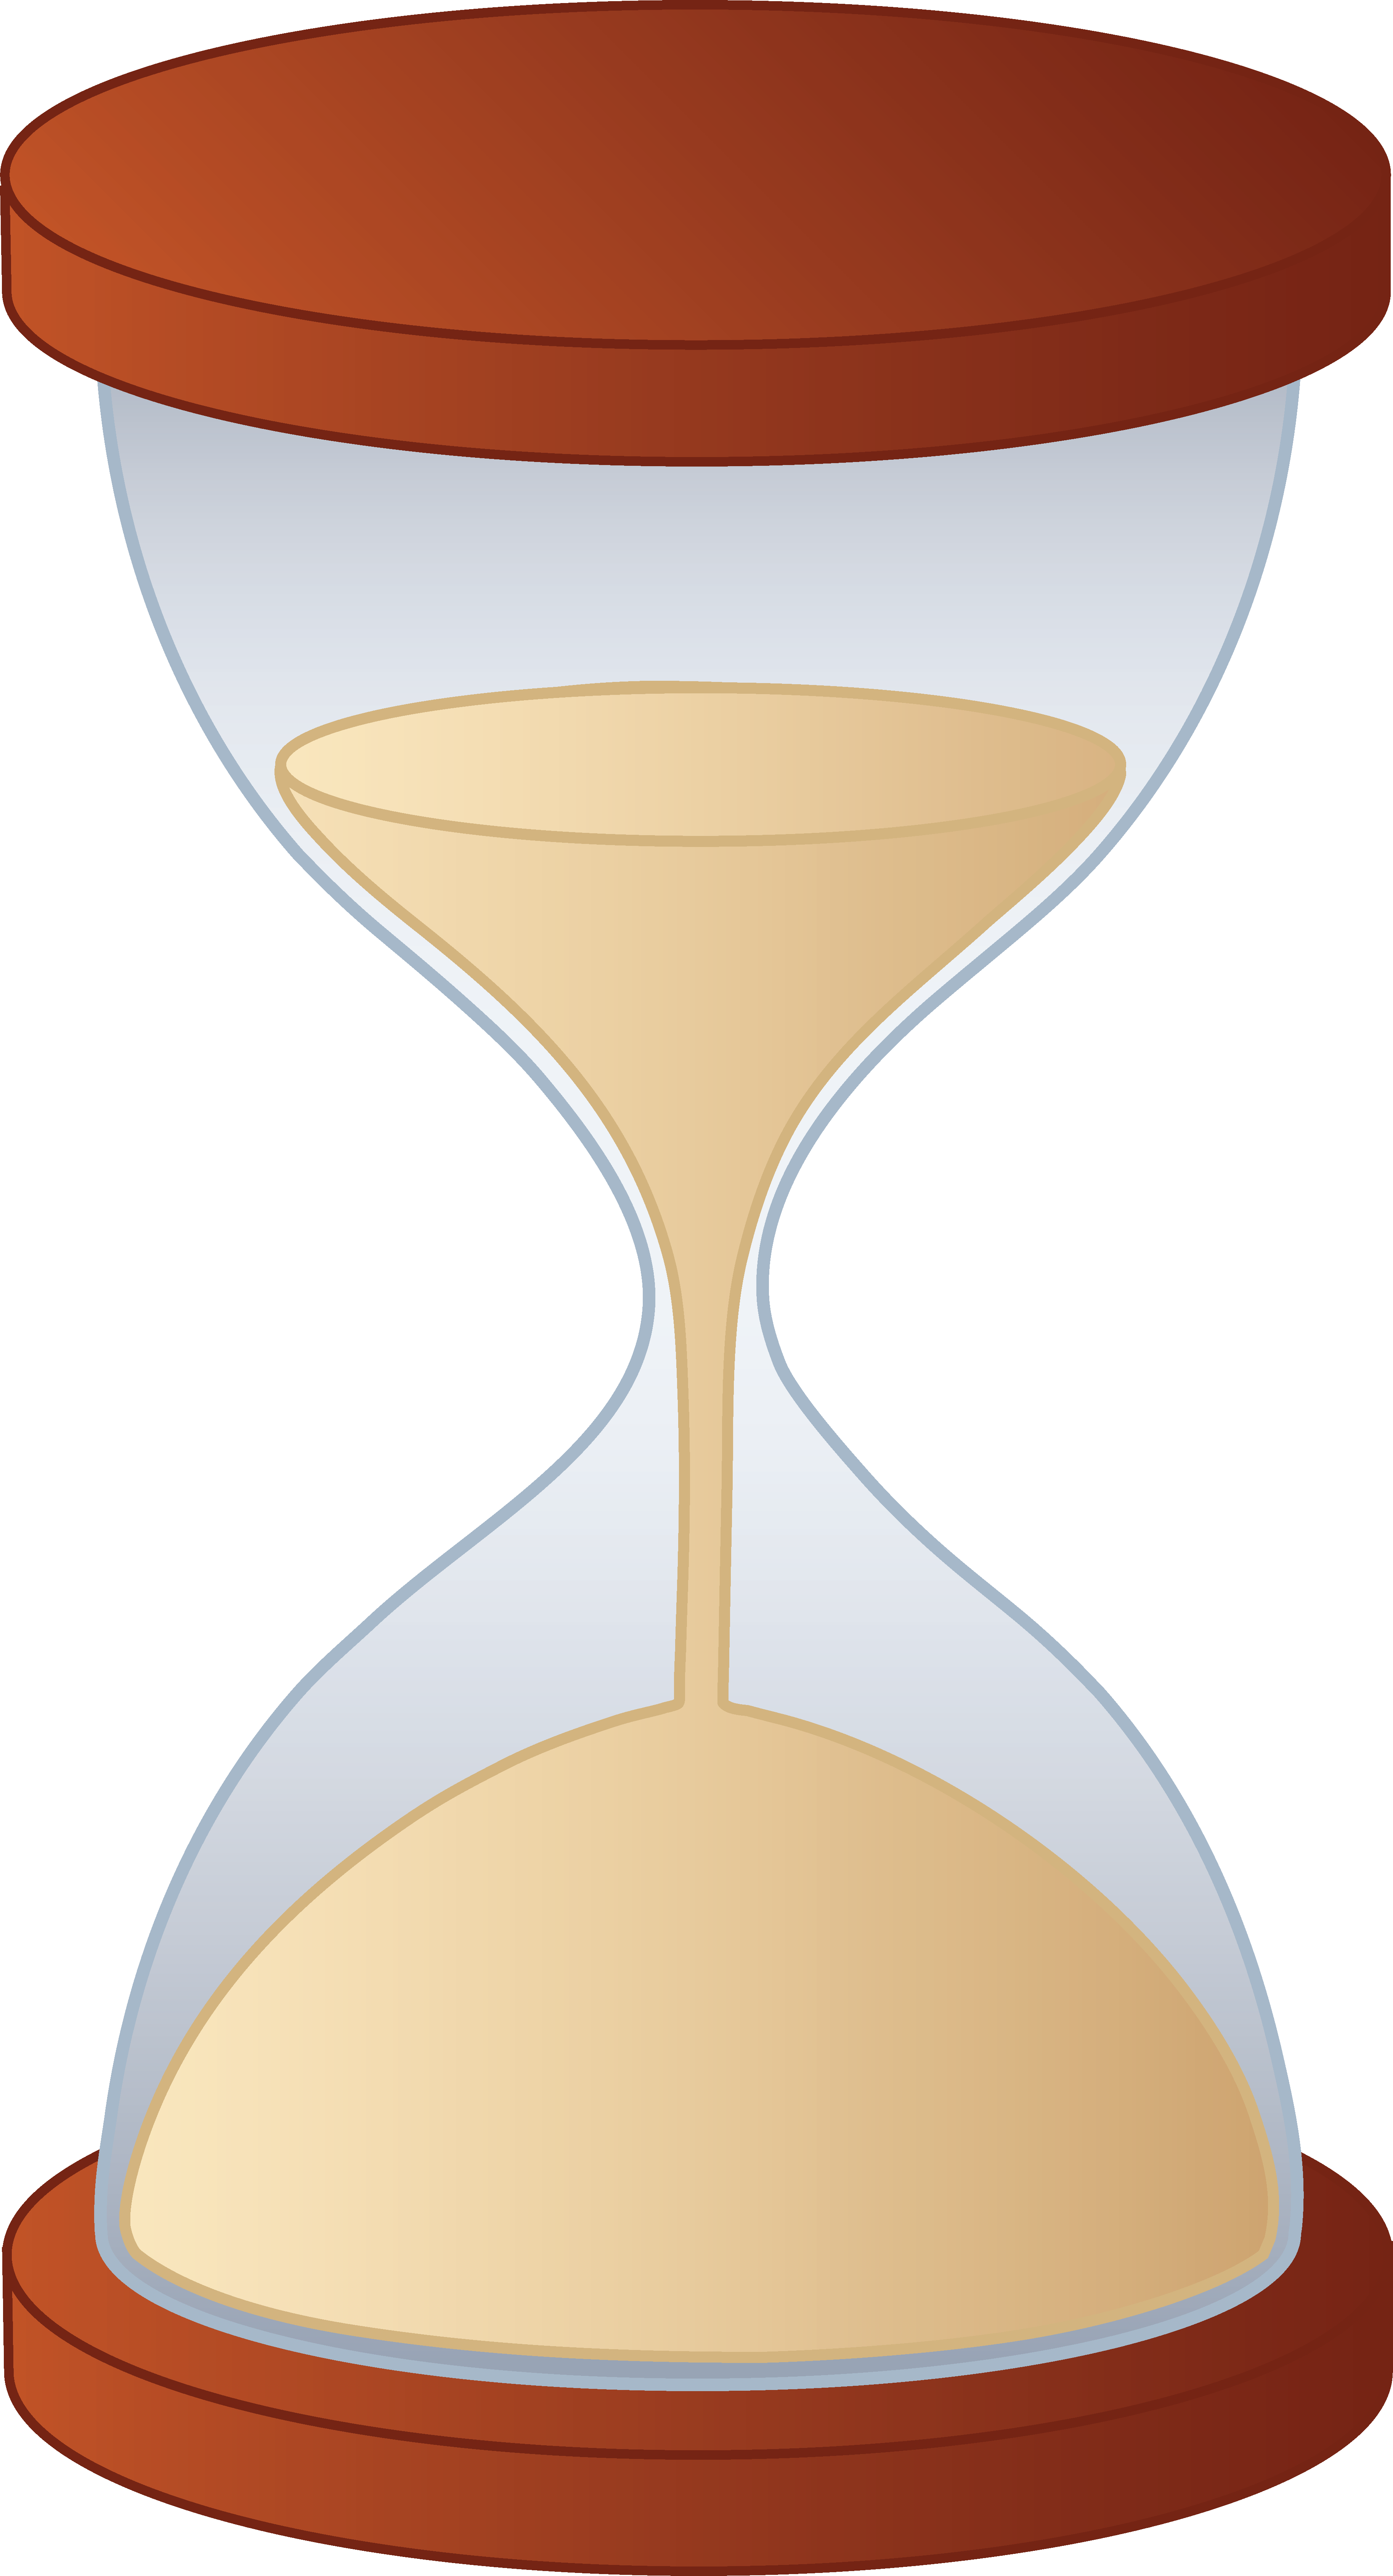 Hourglass Clipart Clipart Best